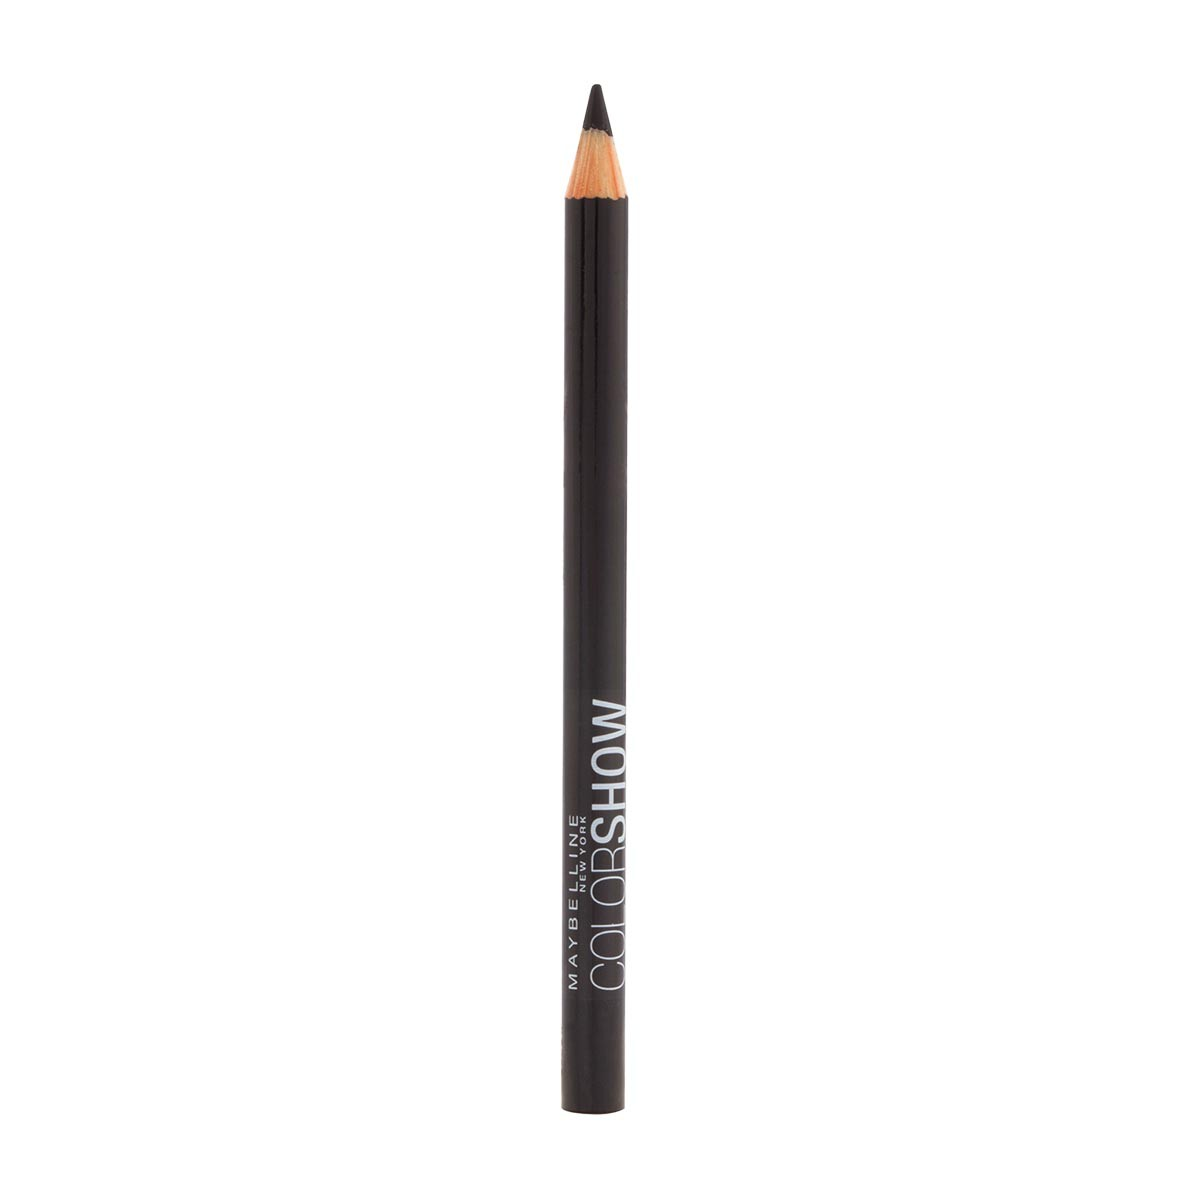 cdeee2c9e5d Maybelline fragrances Colorshow Crayon Khol 100 Black, Dressinn